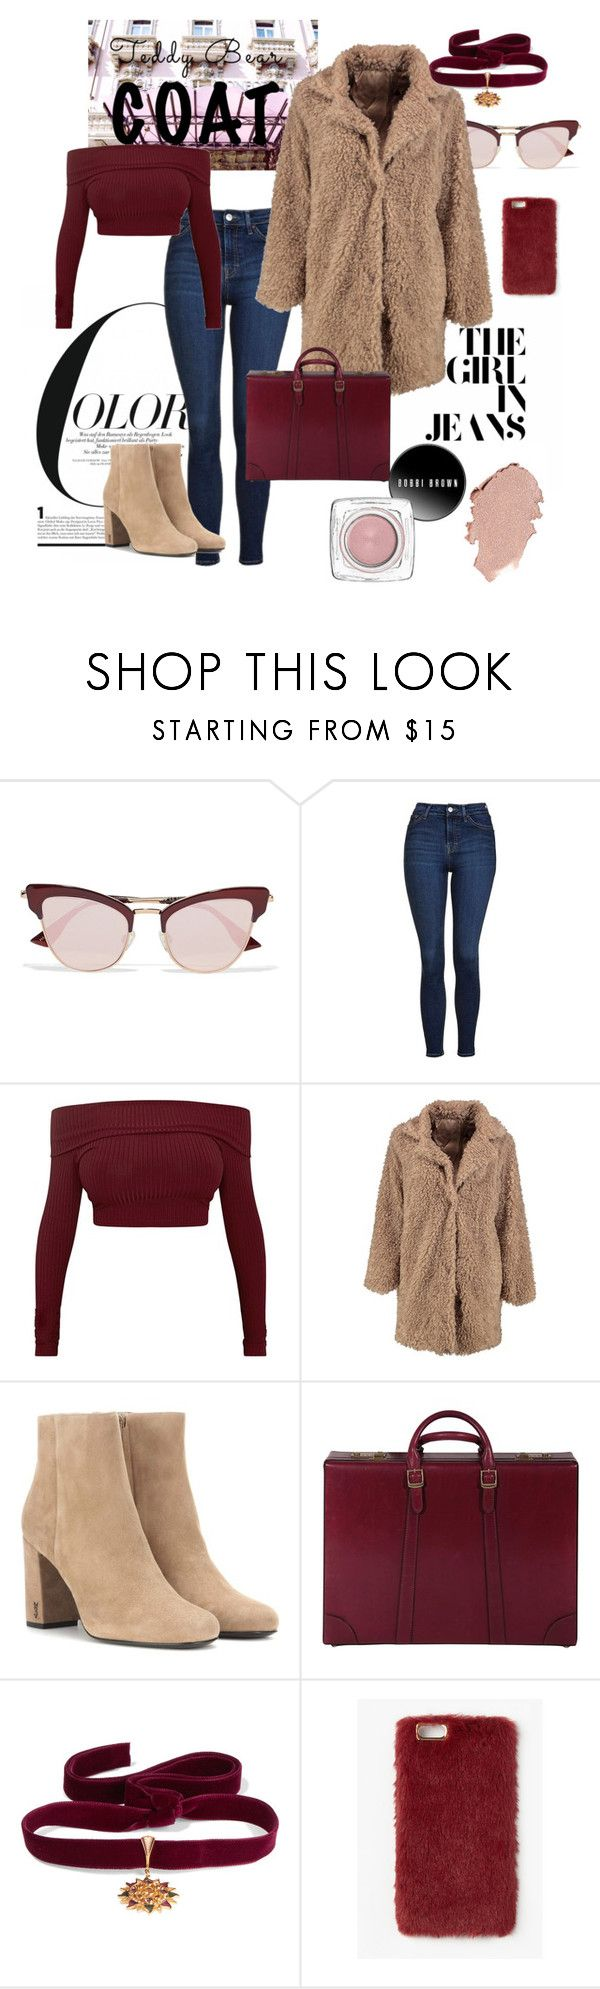 """""""Teddy x Bear-gundy"""" by constellationz ❤ liked on Polyvore featuring Le Specs, Topshop, Boohoo, Yves Saint Laurent, Gucci, Diego Percossi Papi and Missguided"""